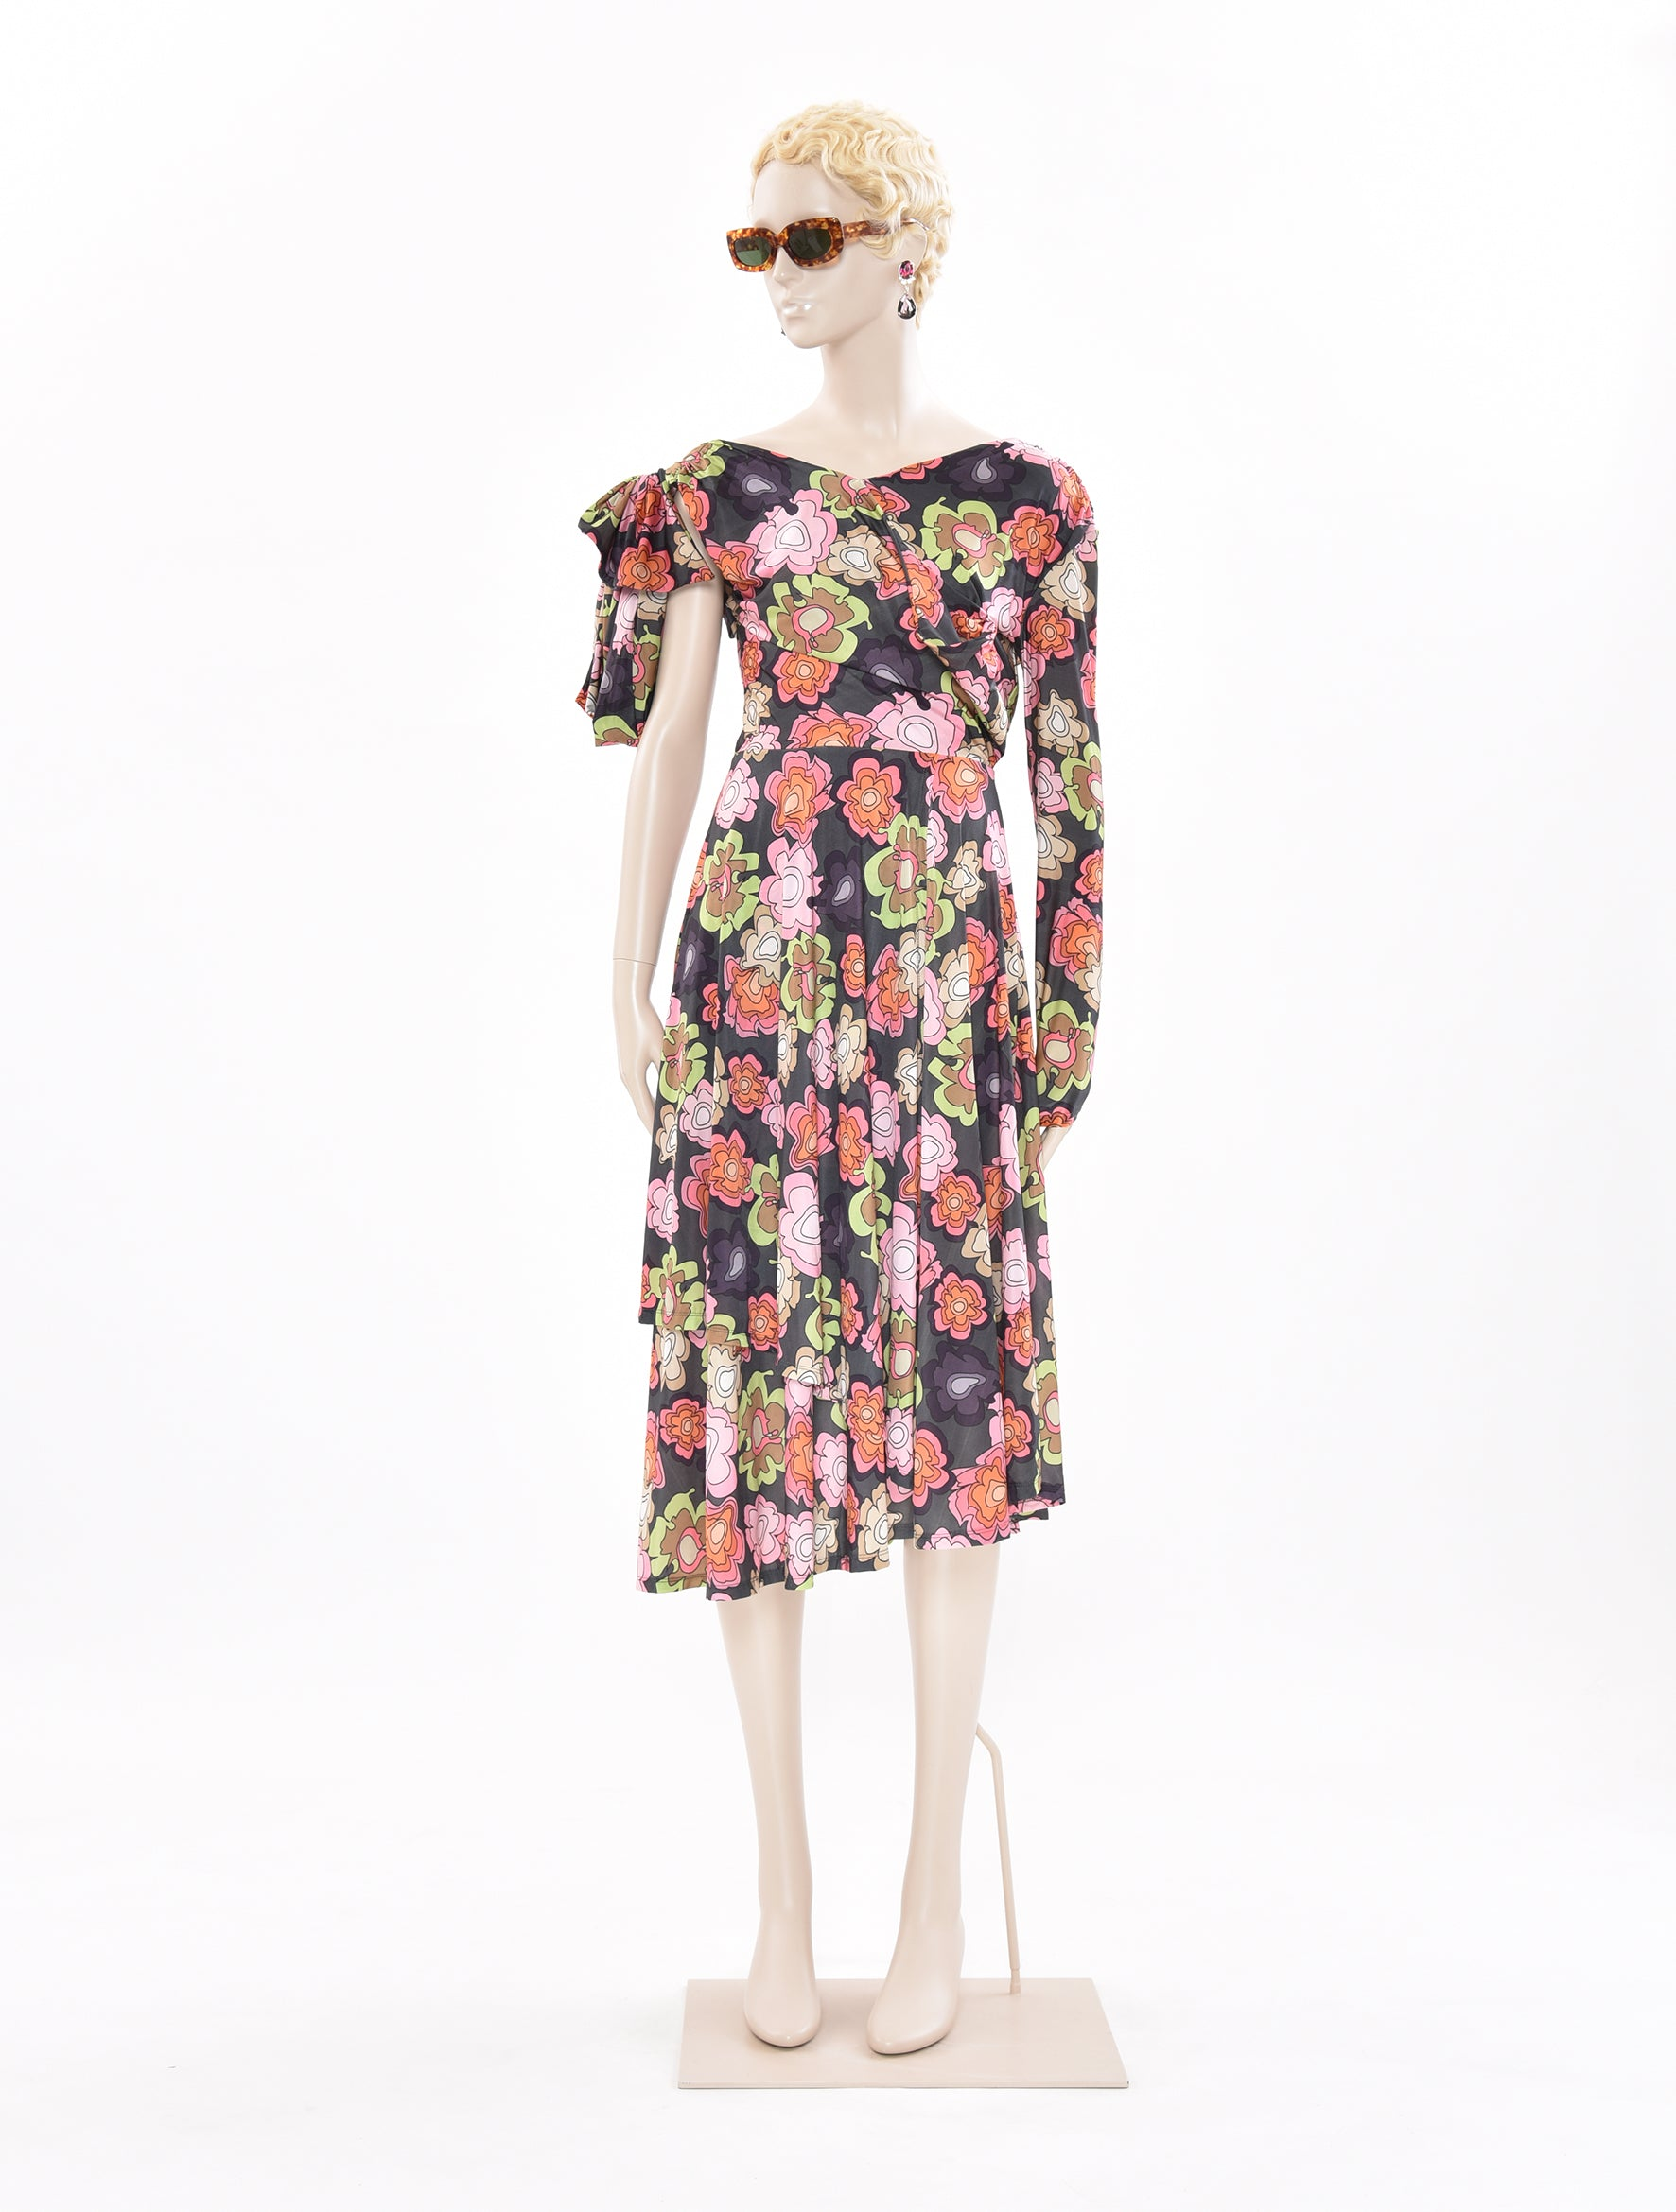 x DDP Black Flower Dress